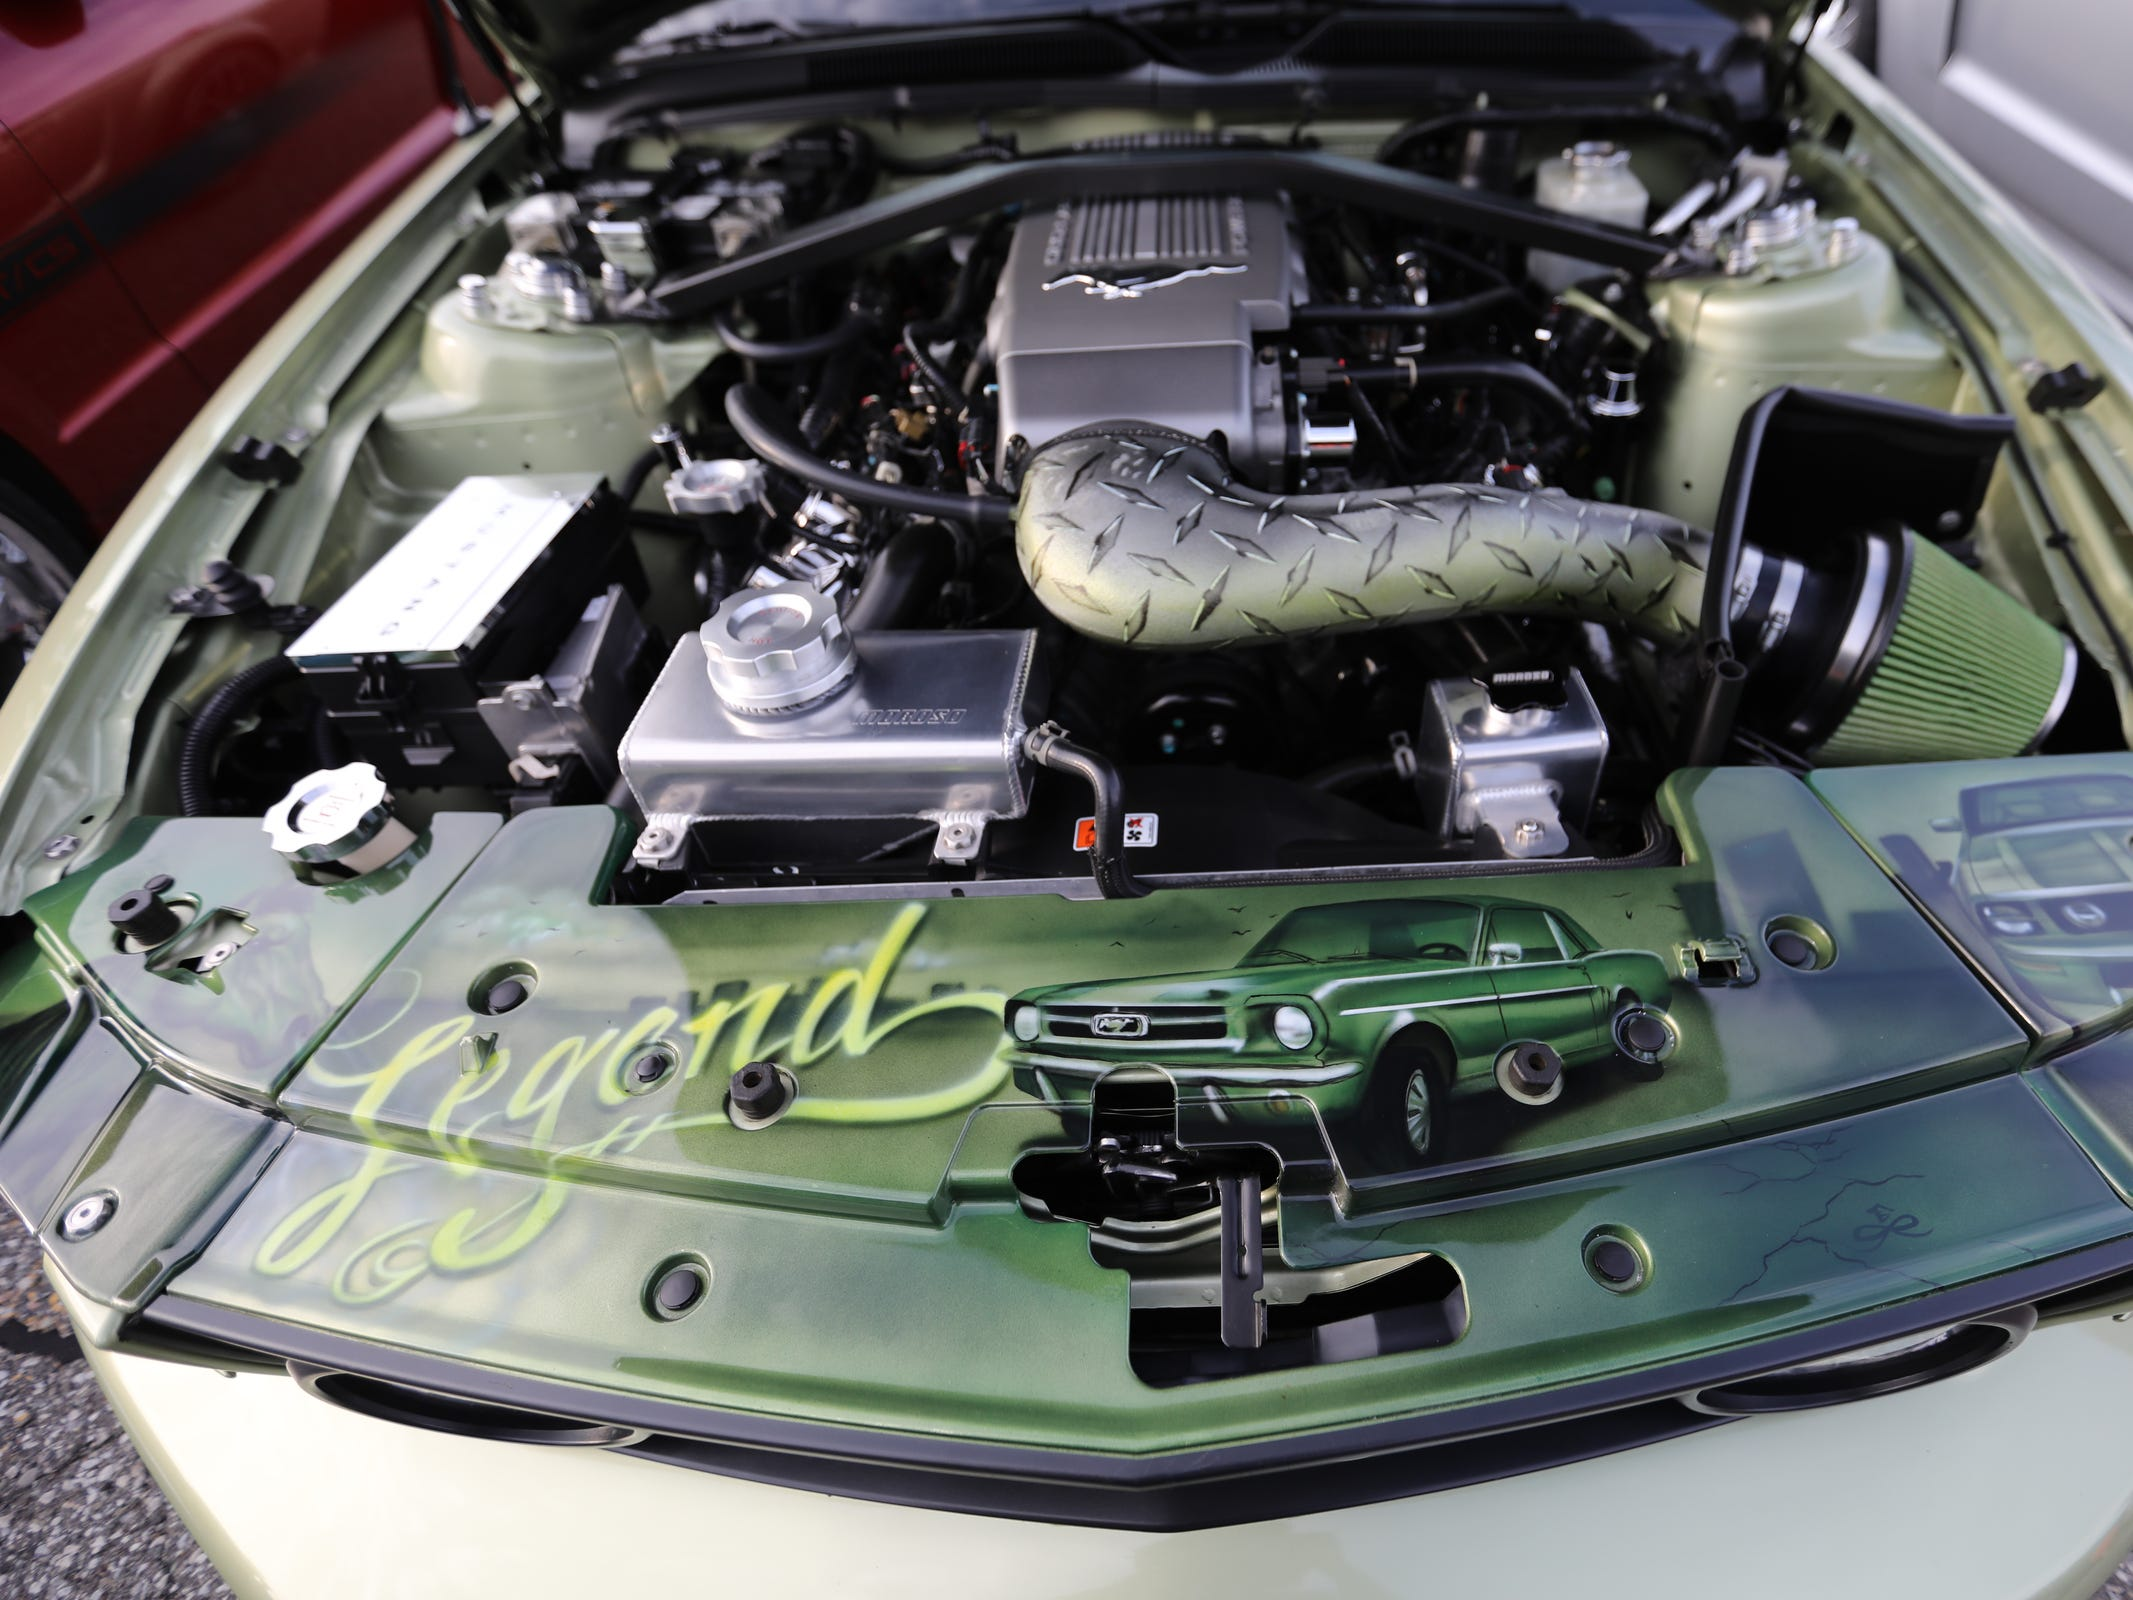 The engine of a 2006 Ford Mustang GT convertible owned by Peter Dunbar, 63, of Detroit has a custom paint job seen at the Ford World Headquarters in Dearborn on Wednesdau, Aug 8, 2018, during an event celebrating the 10 millionth Mustang.